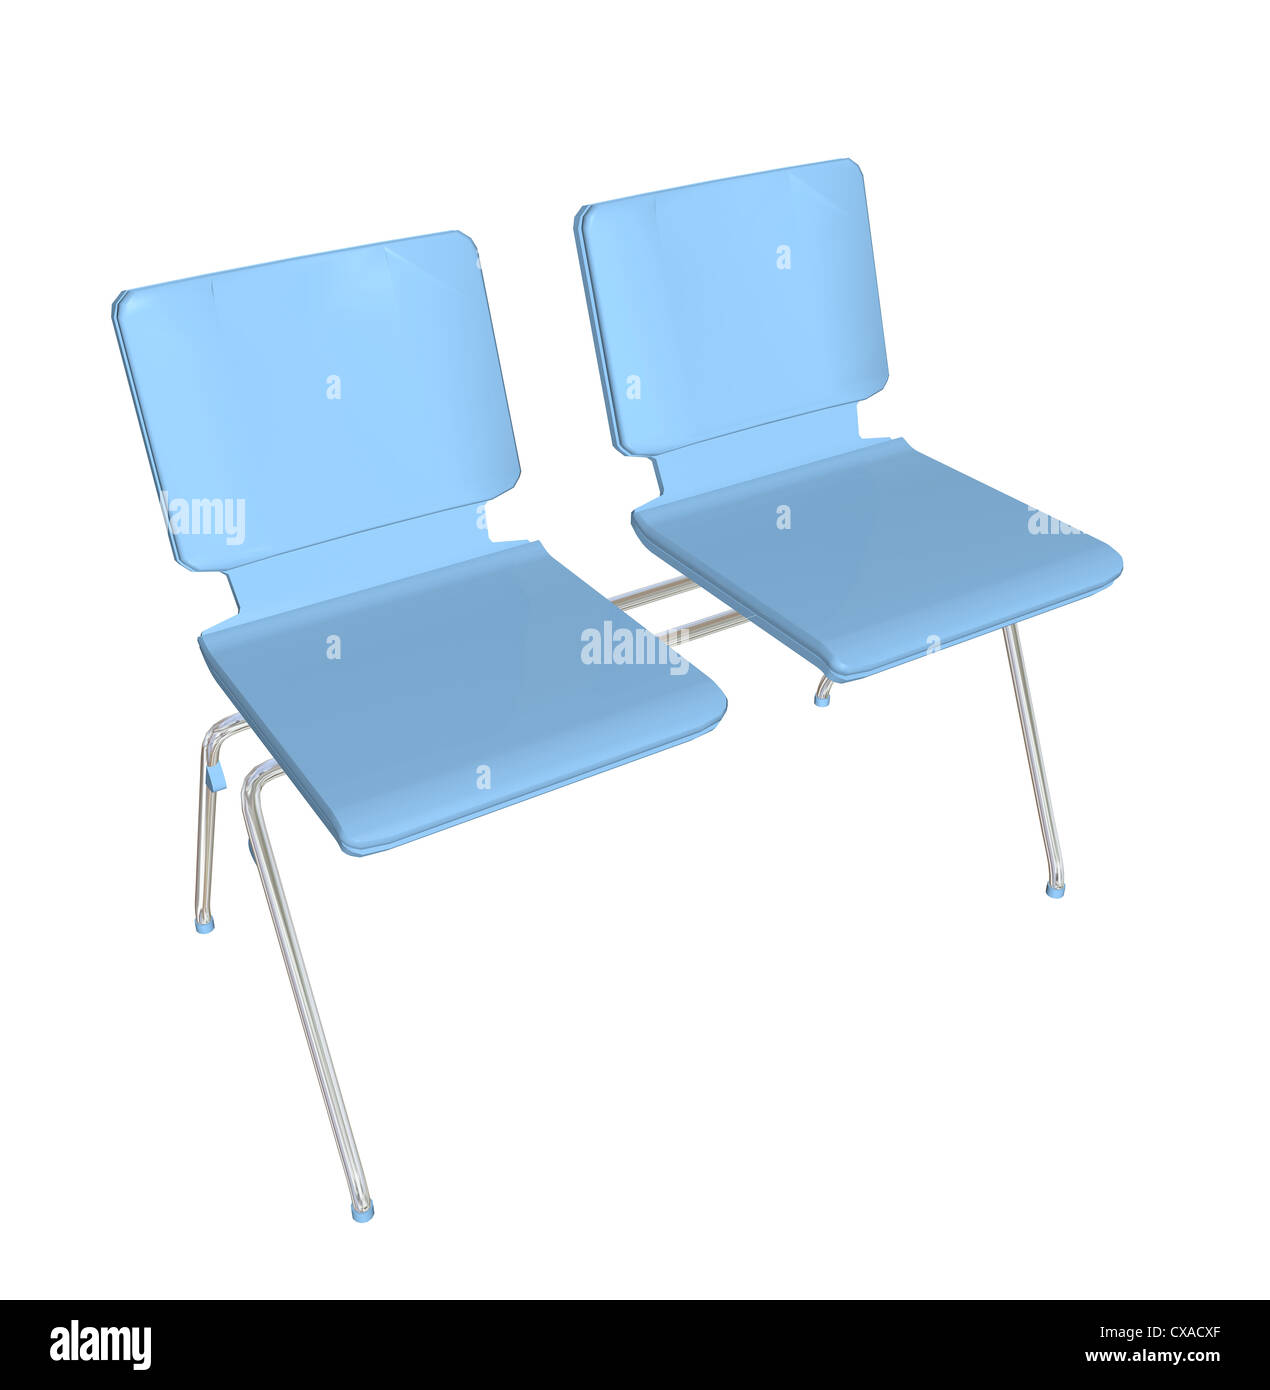 Plastic chair metal legs - Two Seater Stackable Plastic Chair Blue Metal Legs 3d Illustration